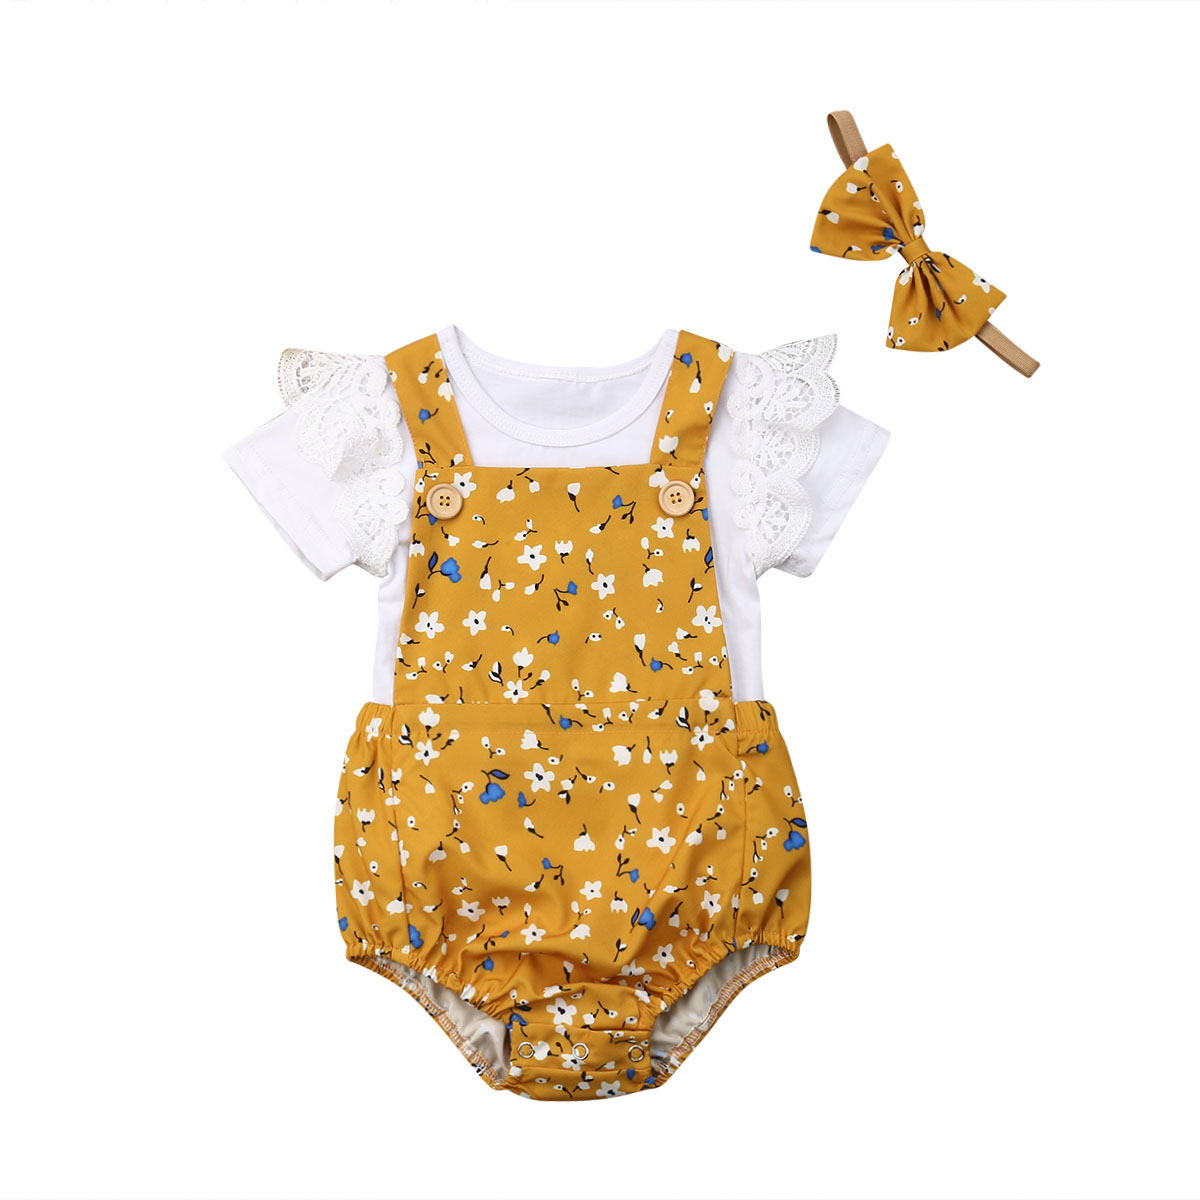 New Baby Girl Summer Clothes Set Lace Ruffle Sleeve Romper +Floral Overalls Shorts+Handband Outfits 0-18